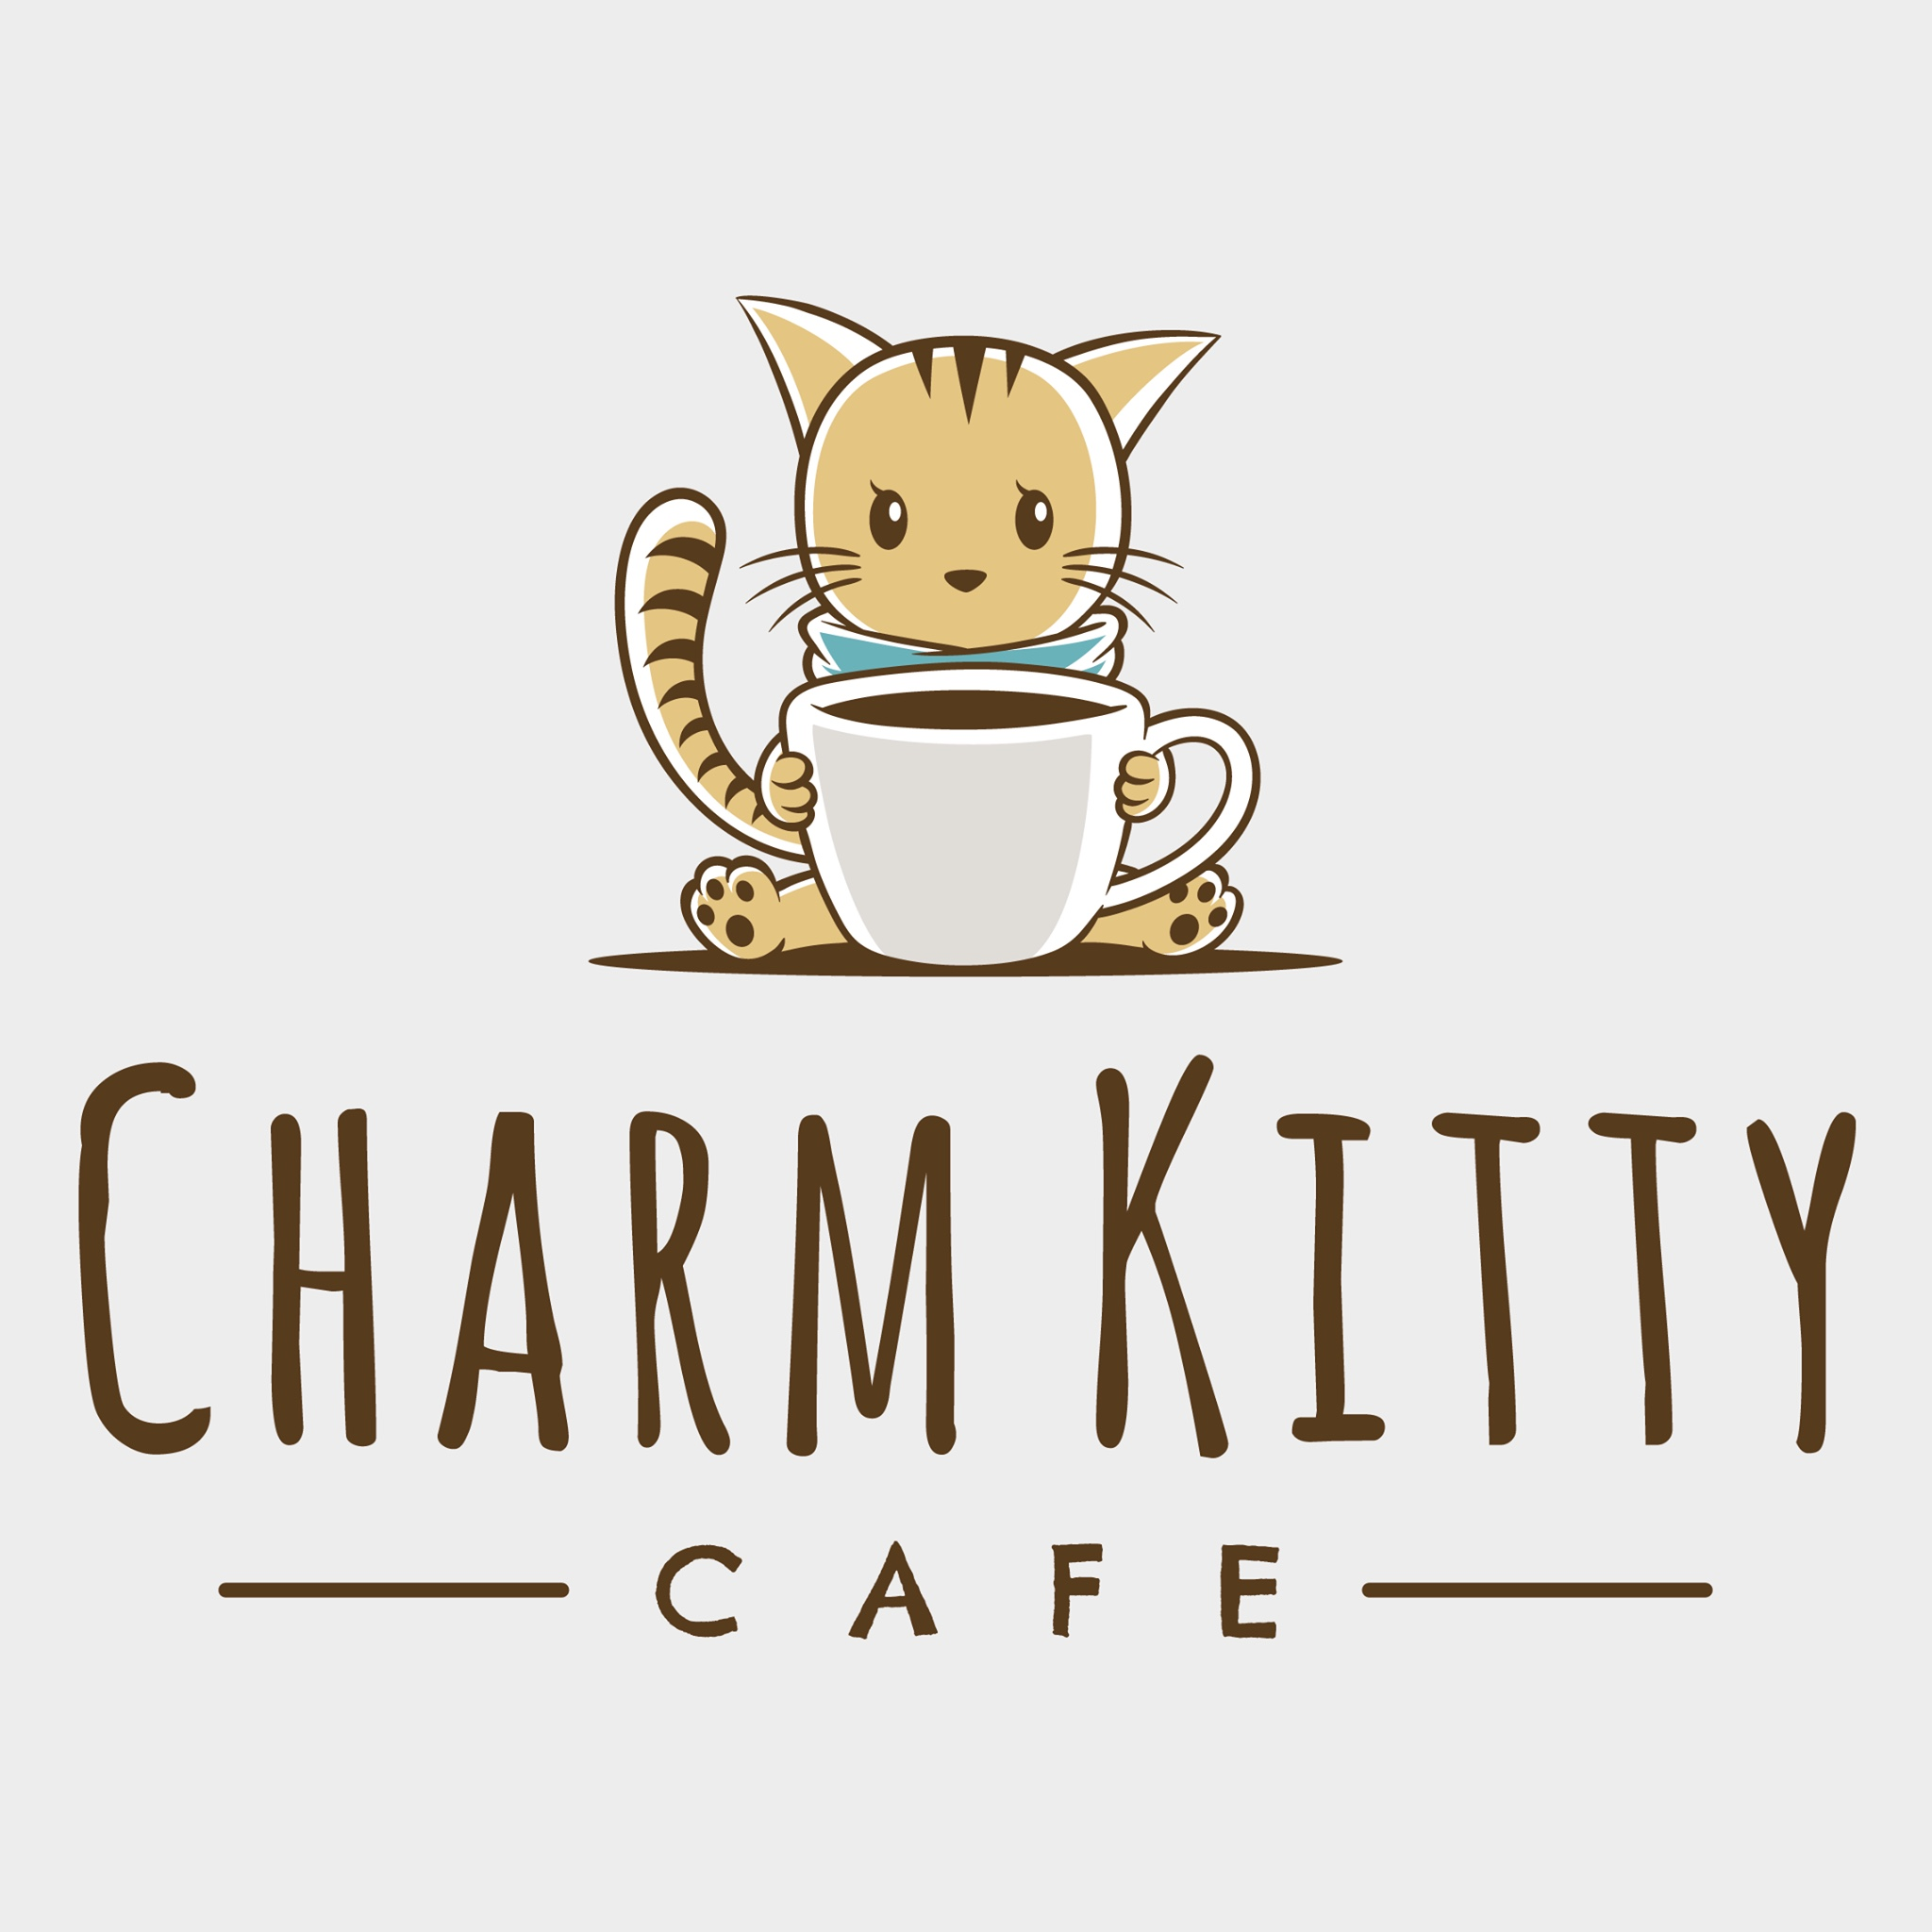 Charm kitty cafe logo